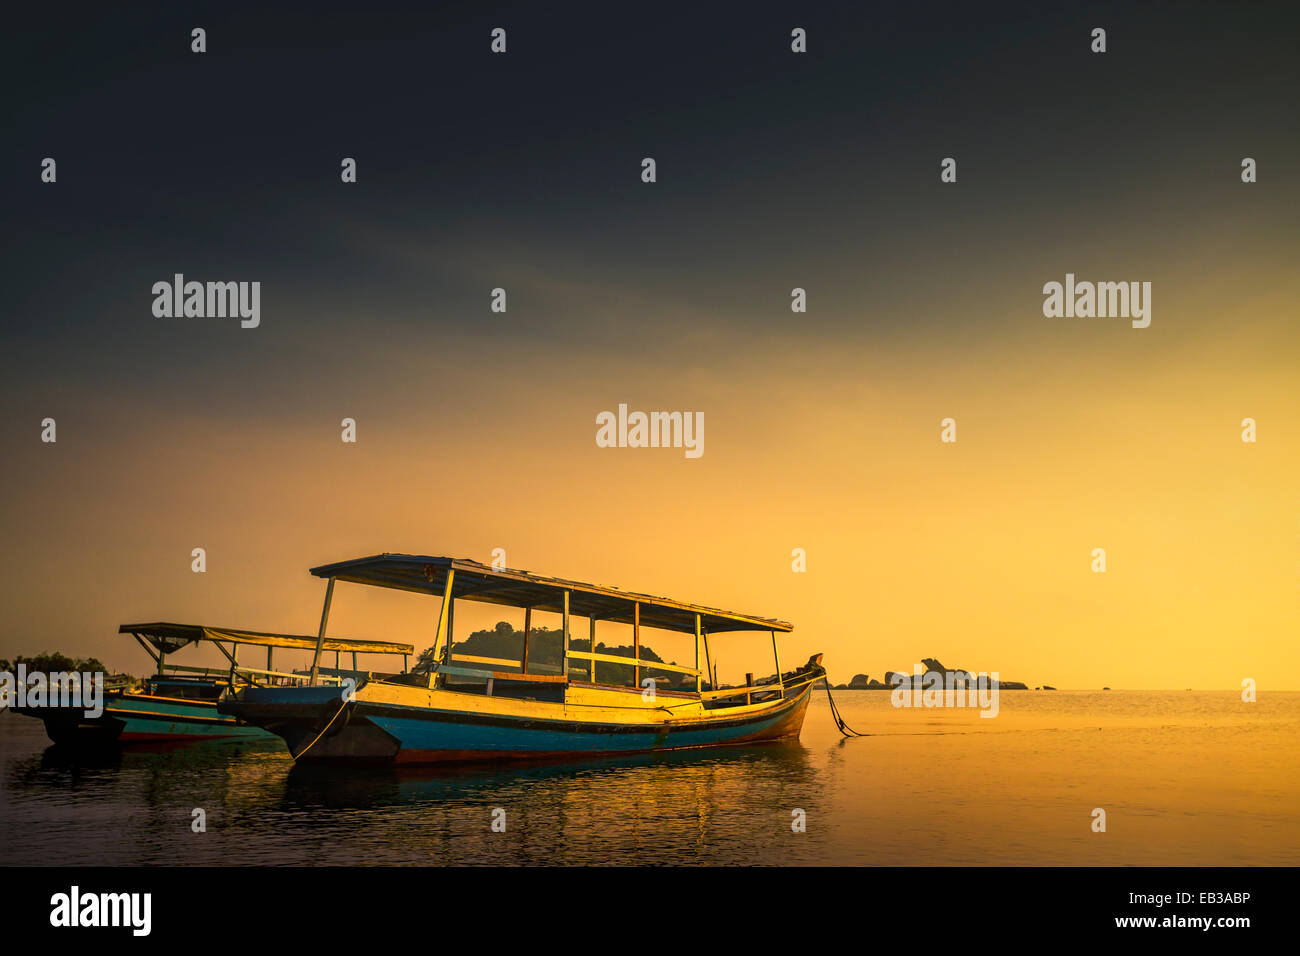 Indonesia, Beitung Island, Traditional boats for island transportation - Stock Image